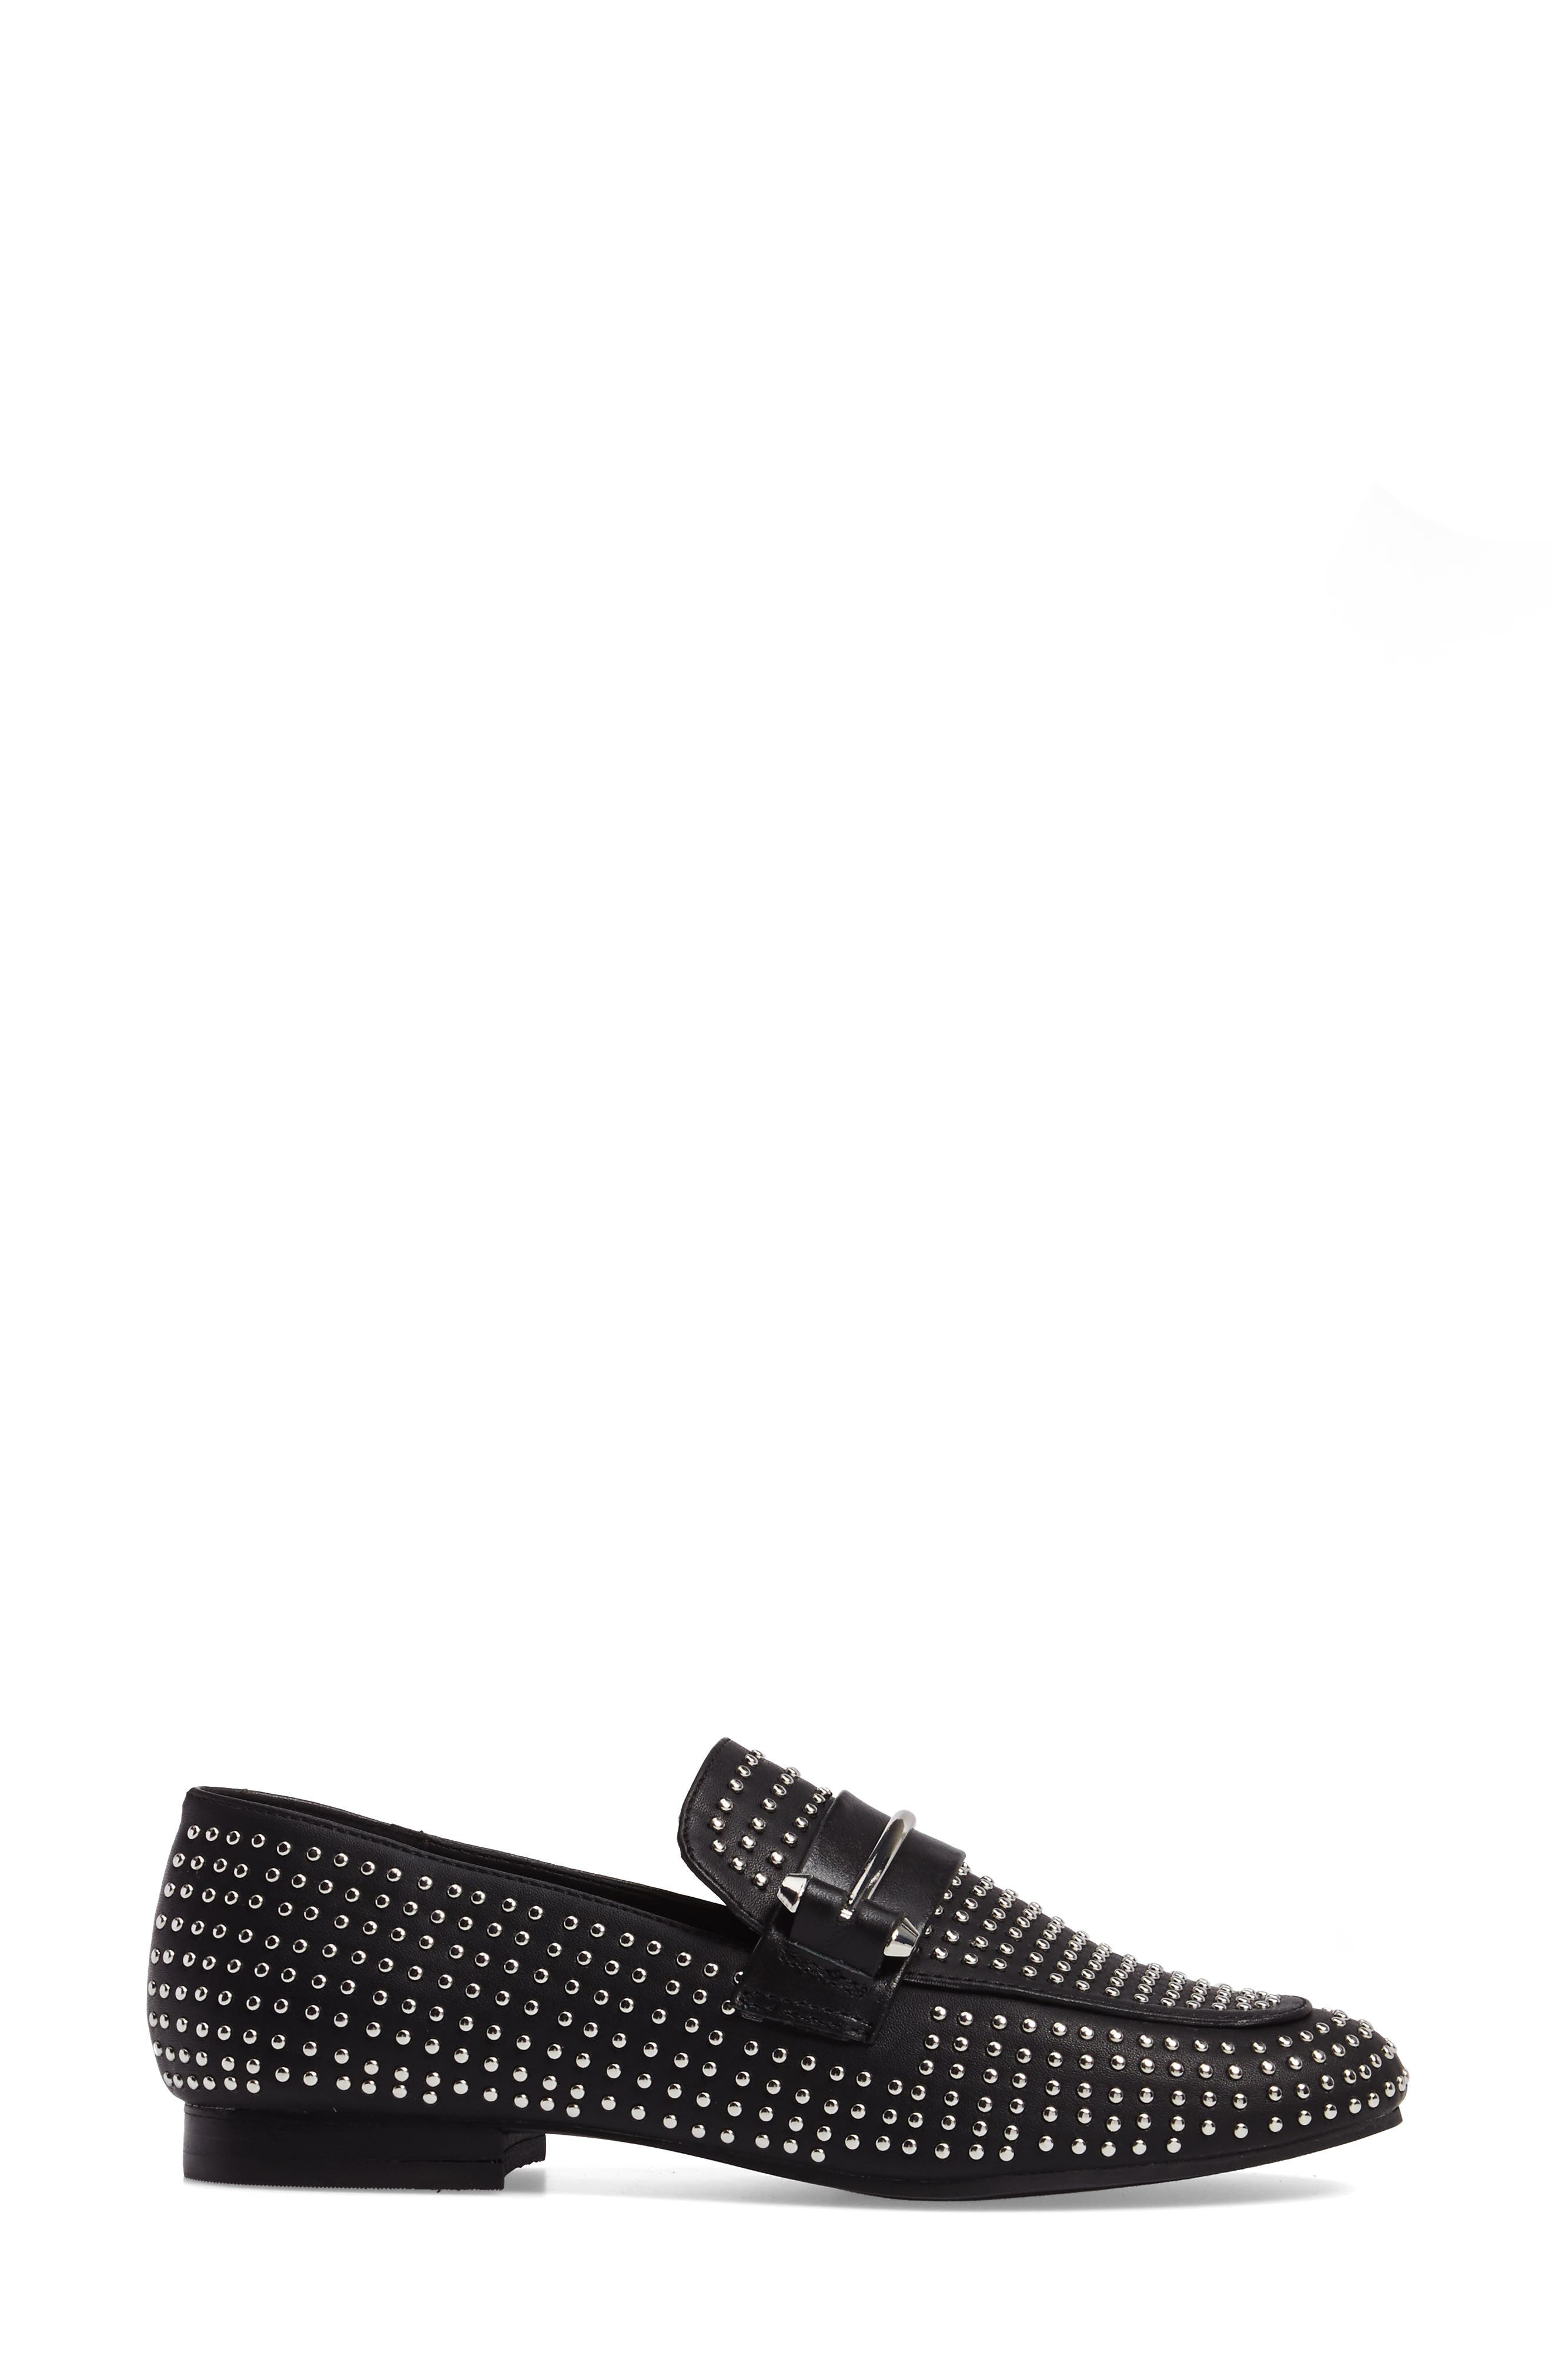 Kast Studded Loafer,                             Alternate thumbnail 3, color,                             001